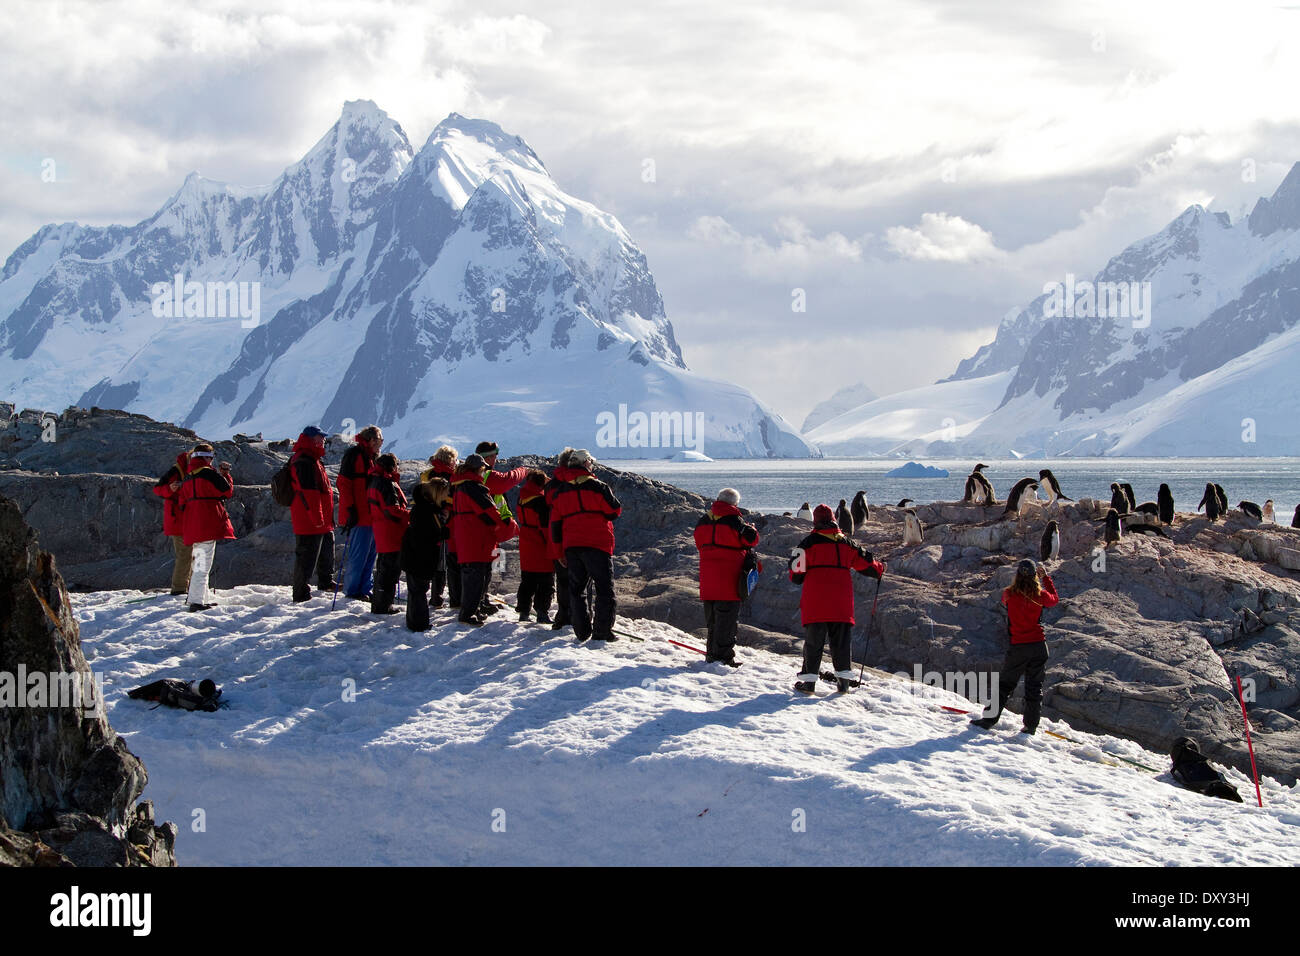 Antarctica tourism with cruise ship passengers viewing Antarctic penguins and mountain, mountains landscape. - Stock Image